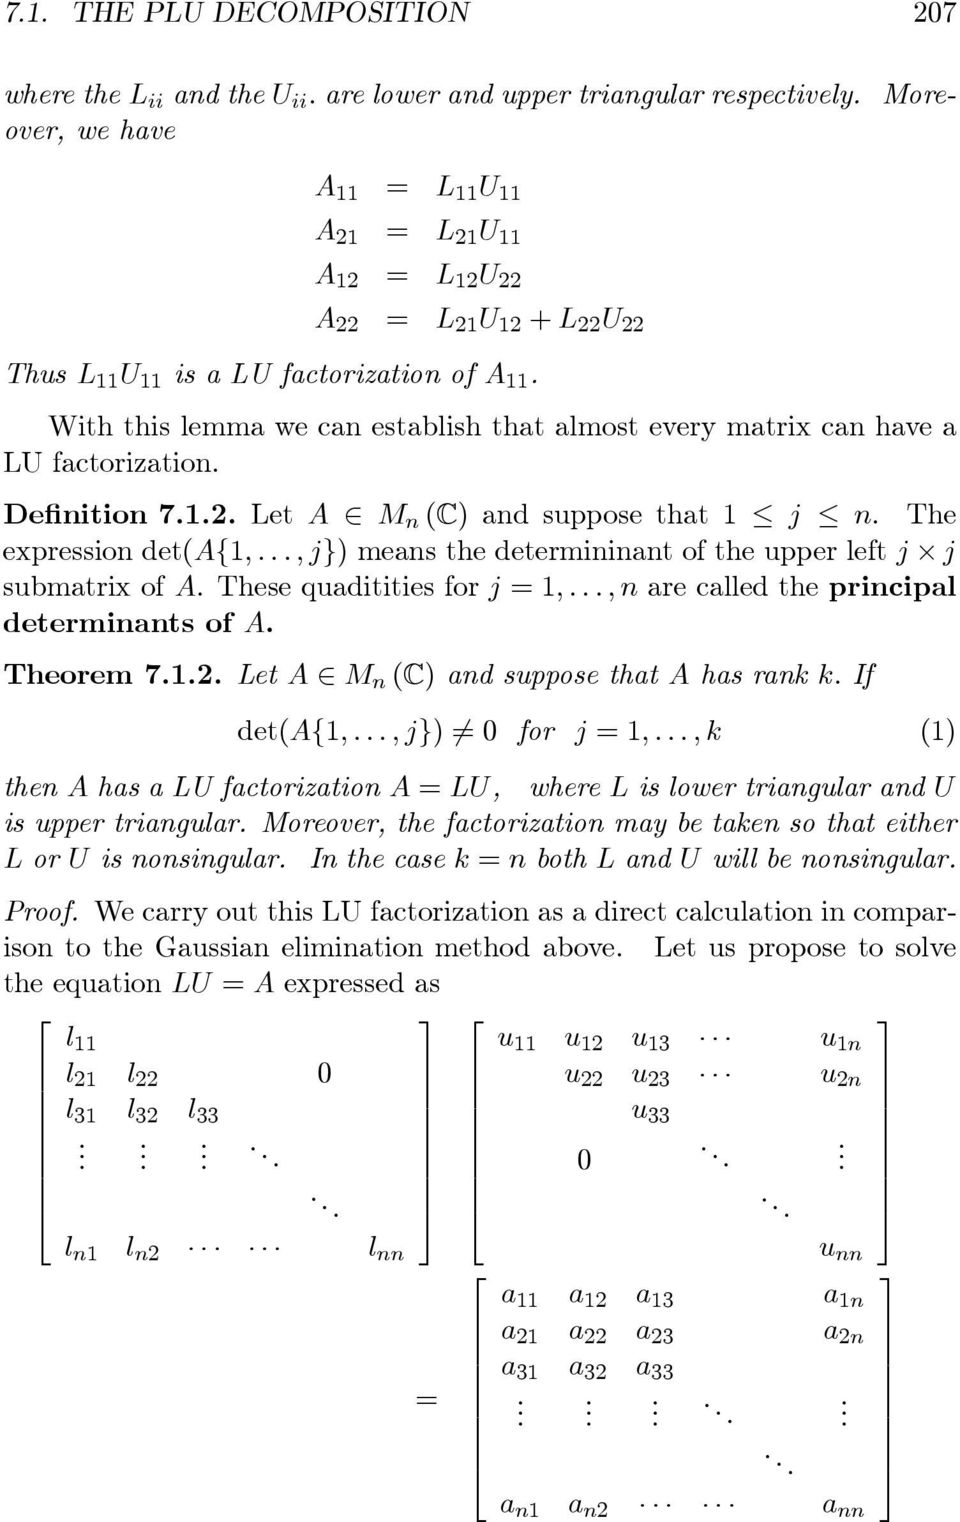 determininant of the upper left j j submatrix of A These quaditities for j =,,nare called the principal determinants of A Theorem 72 Let A M n (C) and suppose that A has rank k If det(a{,,j}) 6= 0